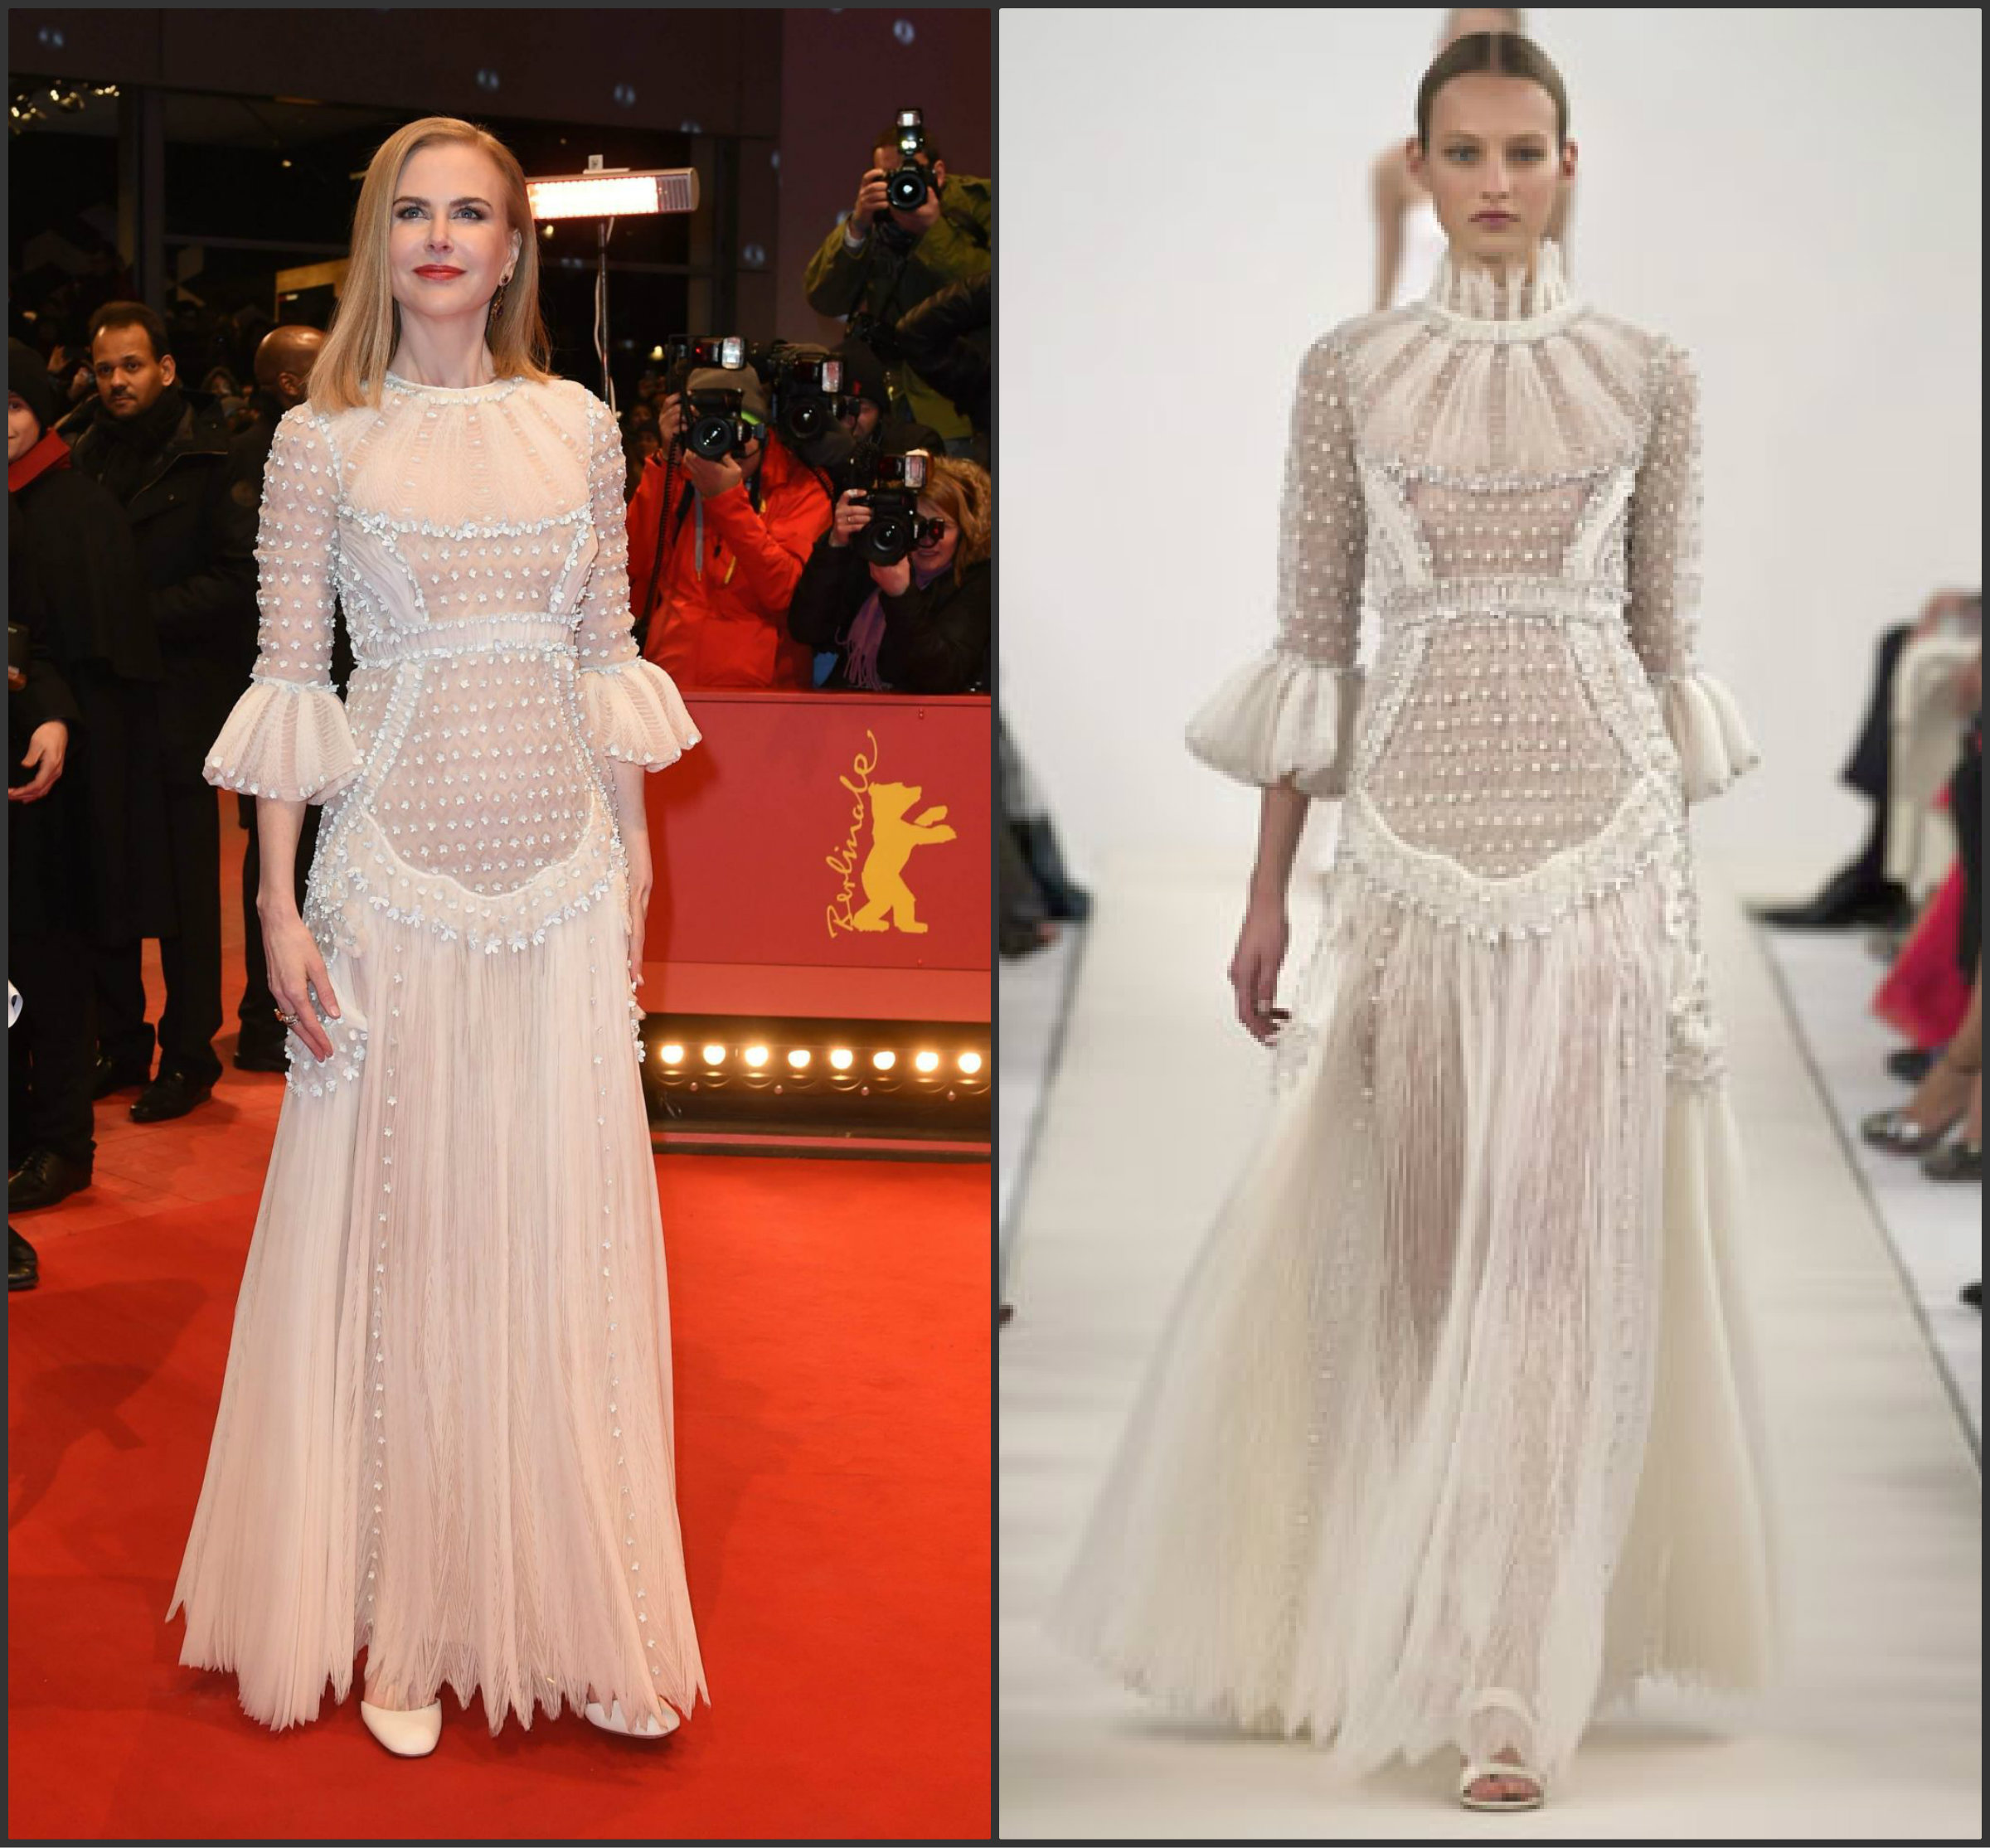 Nicole-Kidman-In-Valentino-Couture-at-Queen-Of-The-Deset-Berlin-Film-Festival Premiere